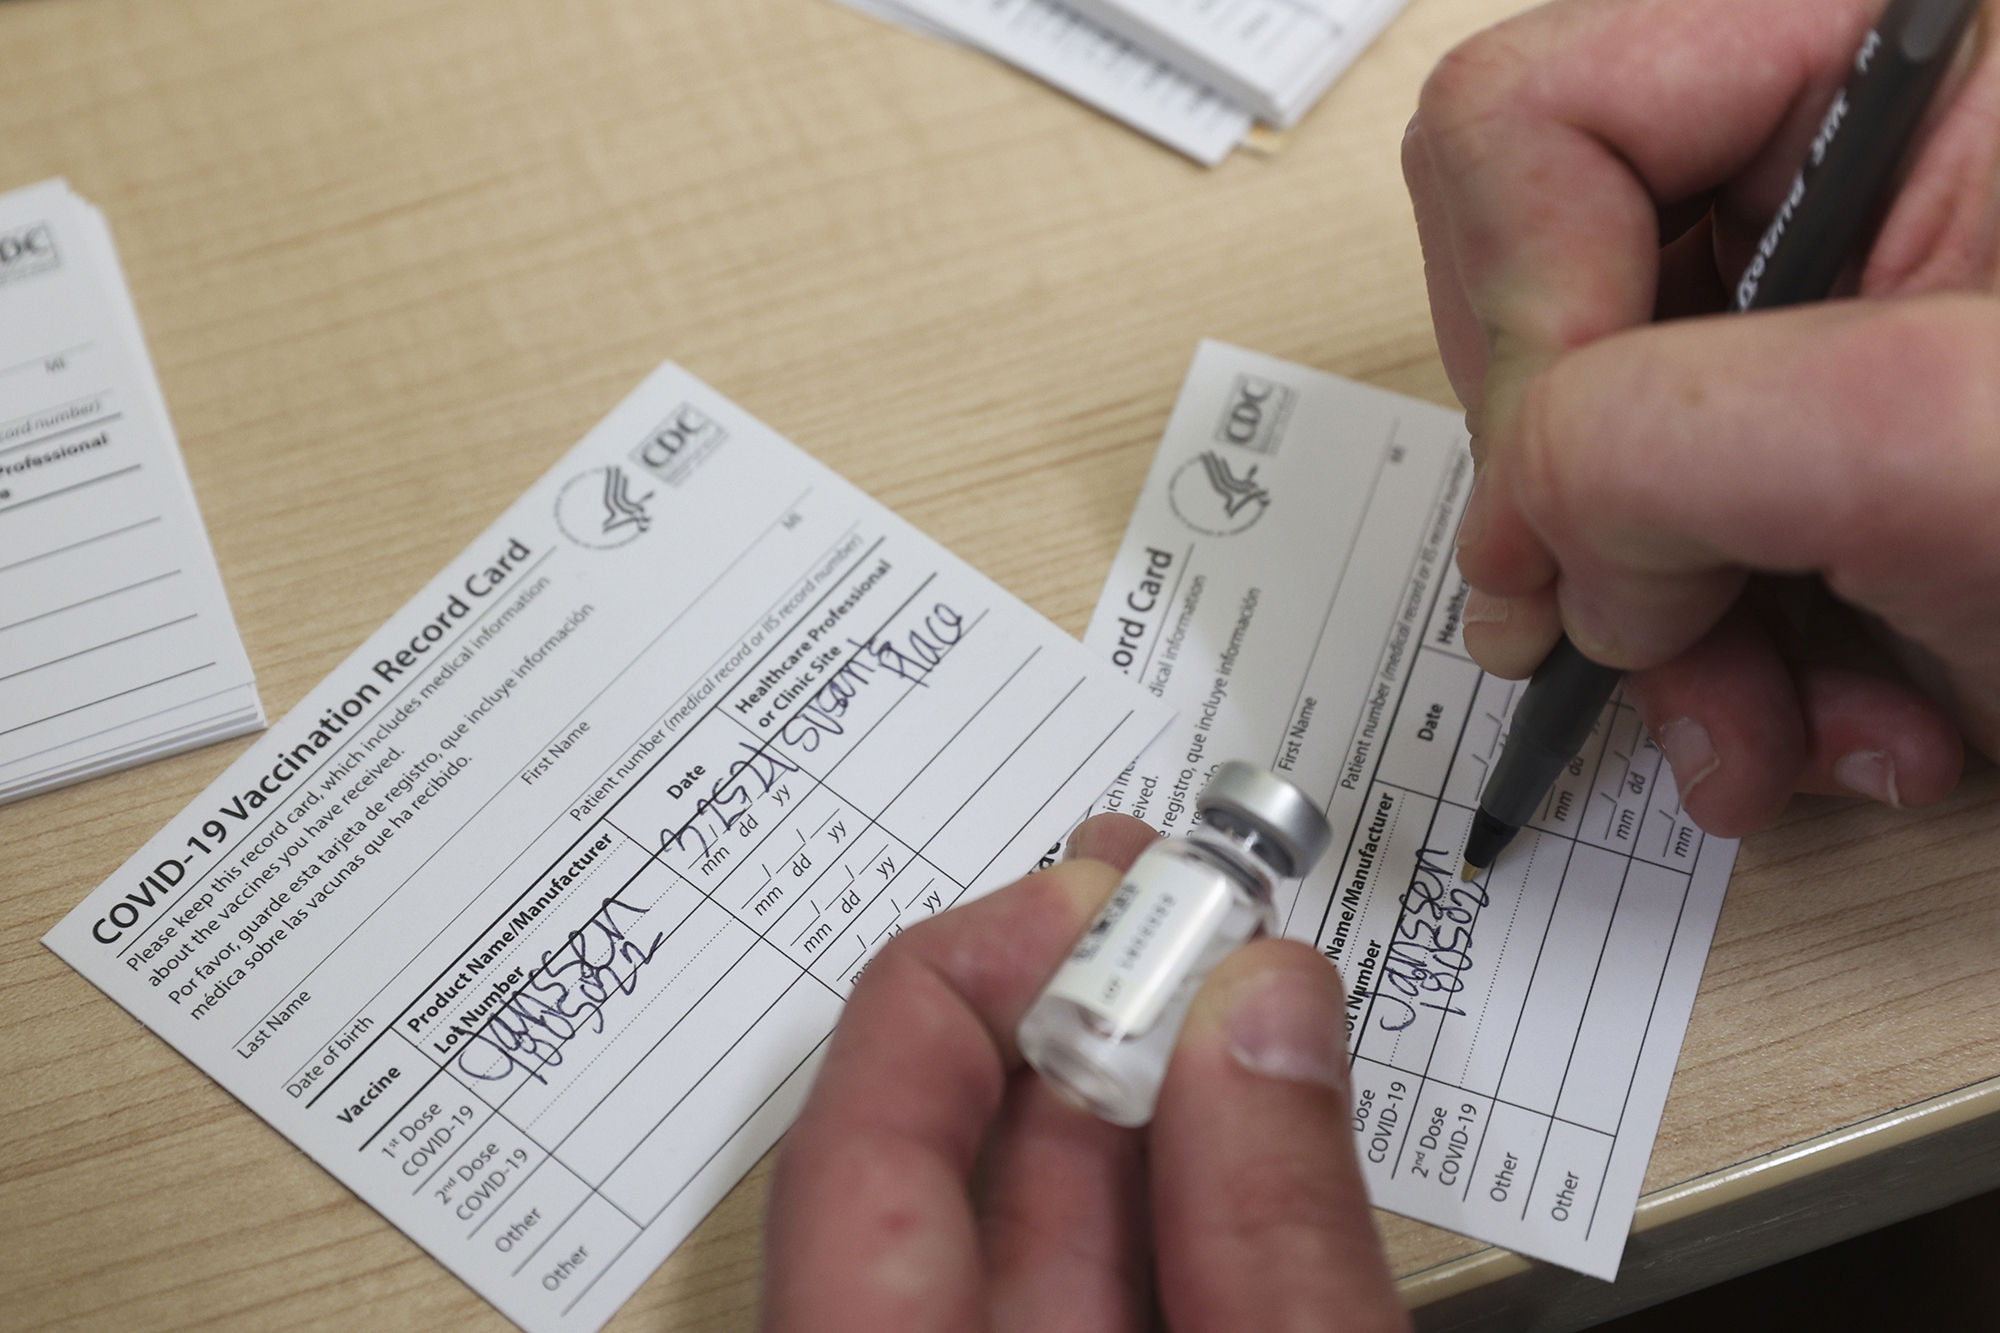 Fake COVID vaccination cards are spreading like a virus online